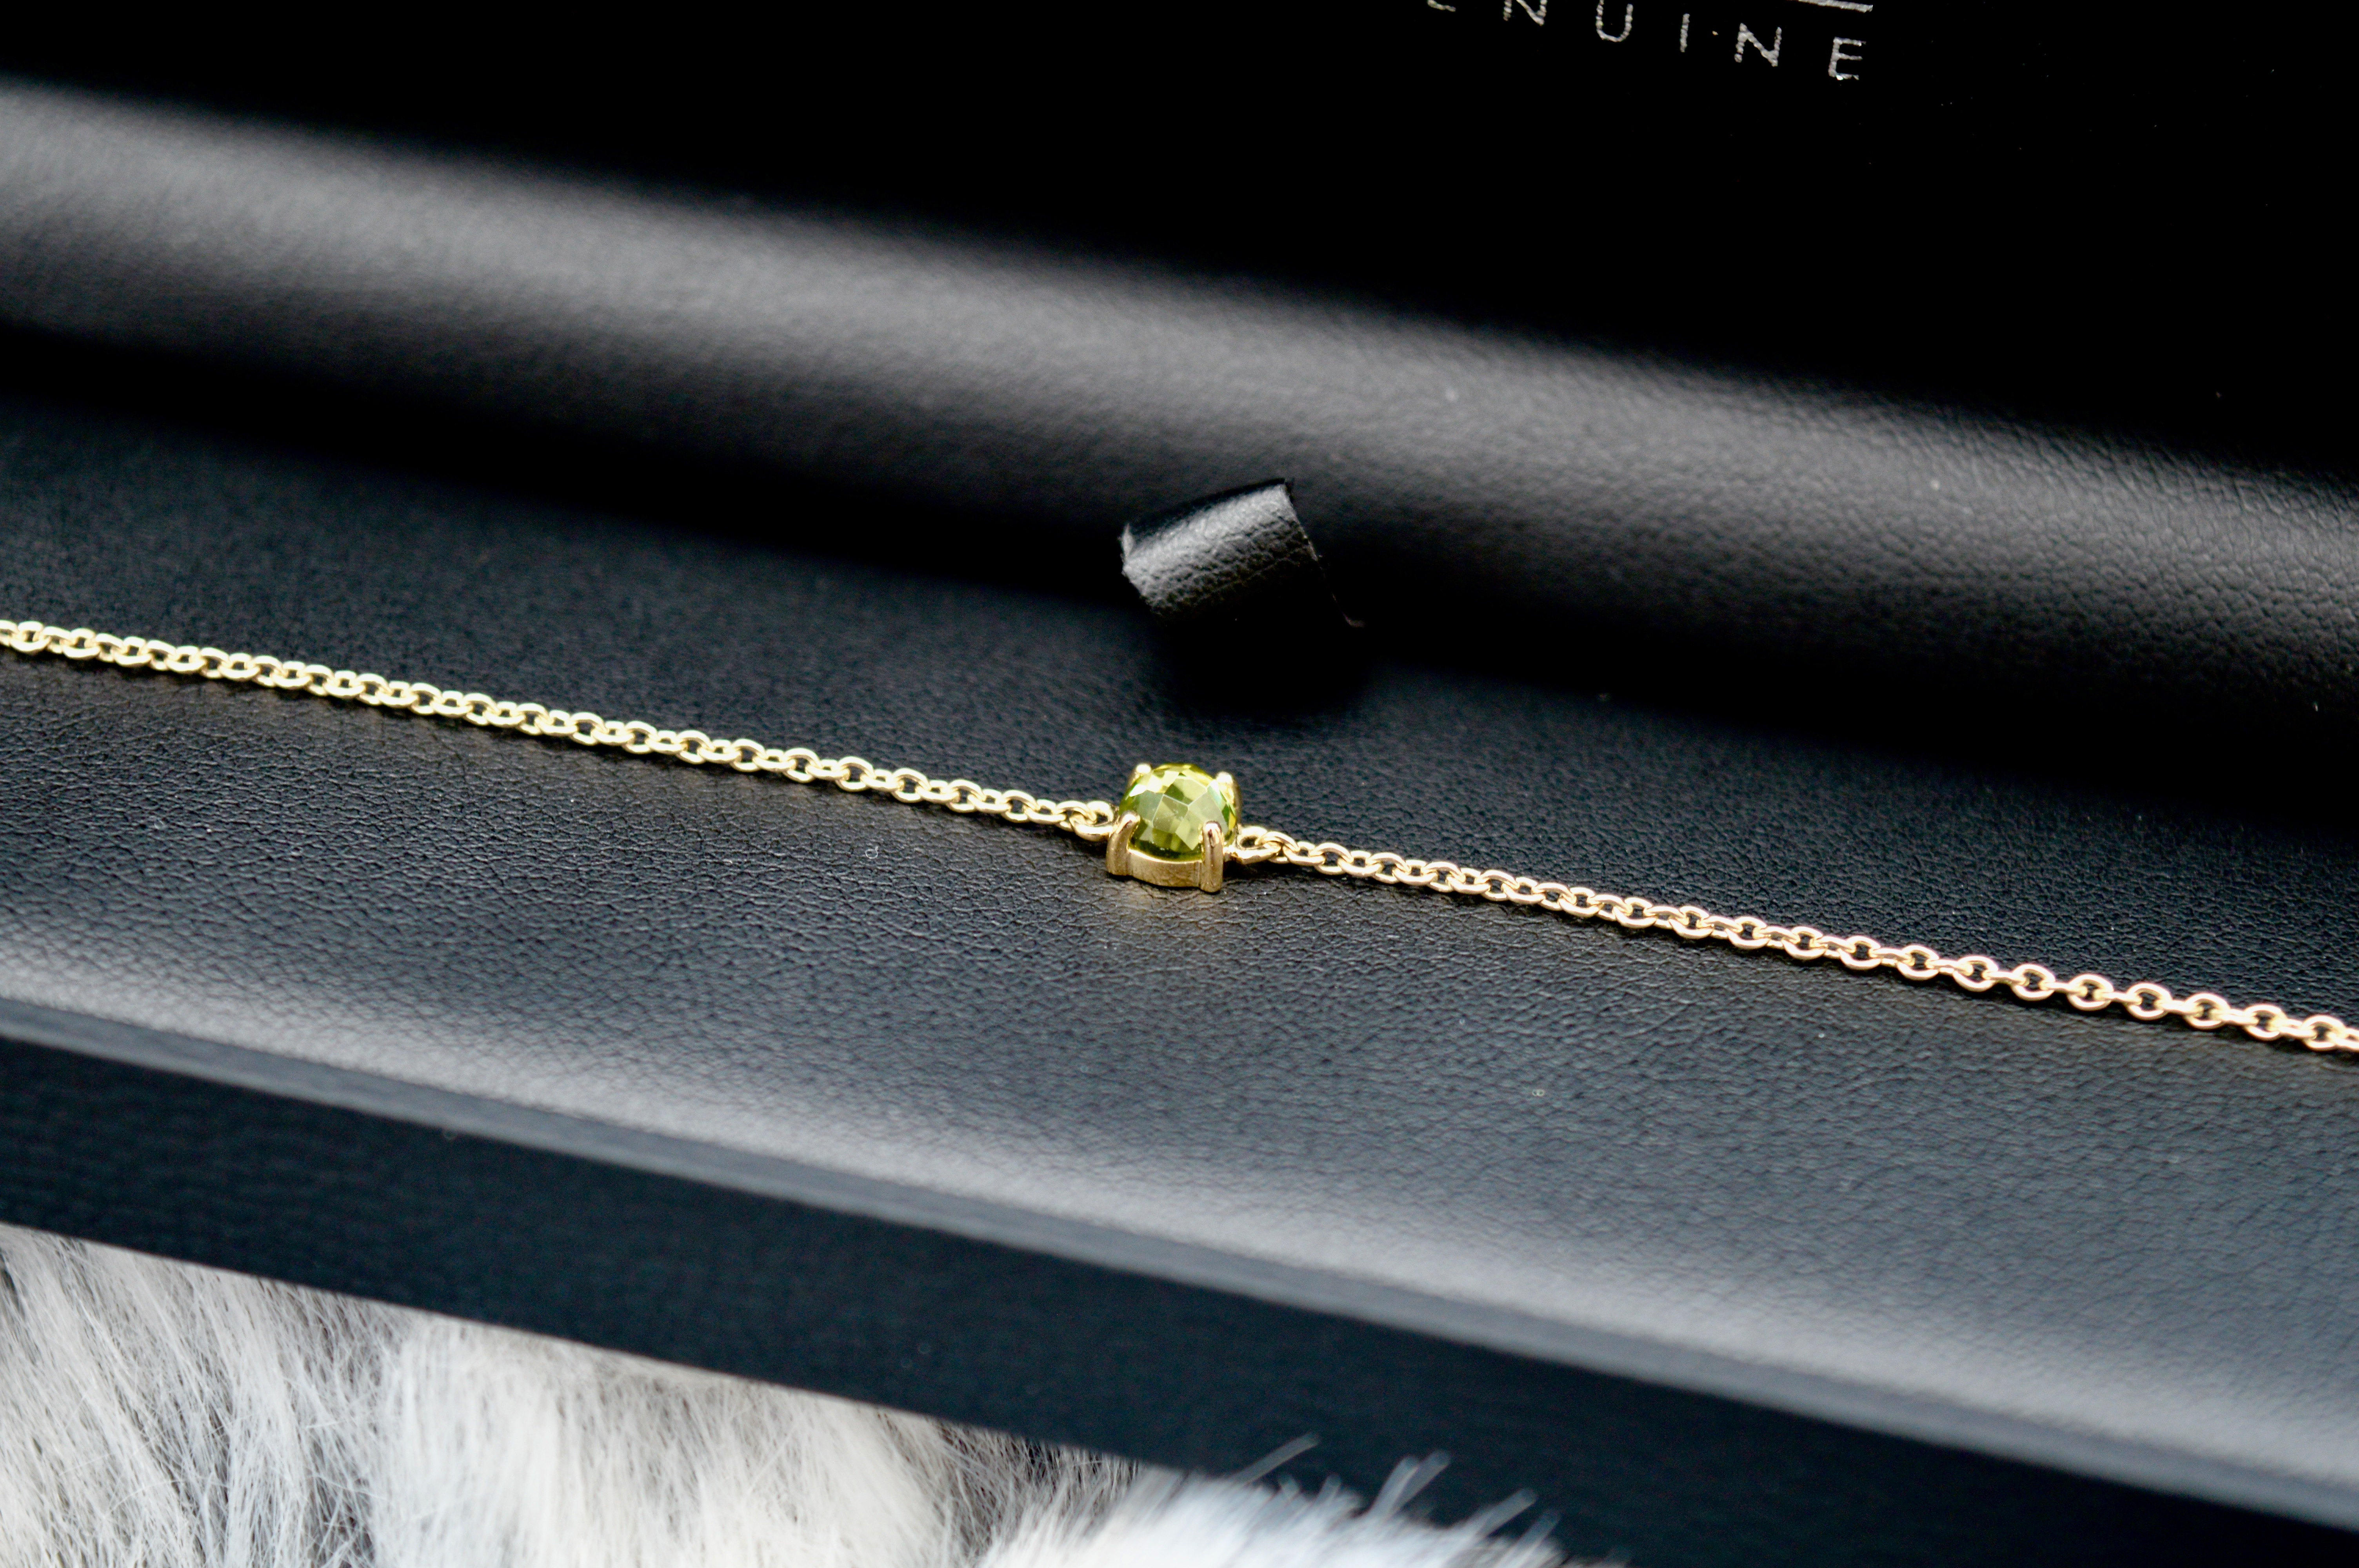 Gemondo Gold and Peridot August Birthstone Bracelet   Memorable Gift   Christmas Gift Guide - What to buy your Grandma   Elle Blonde Luxury Lifestyle Destination Blog